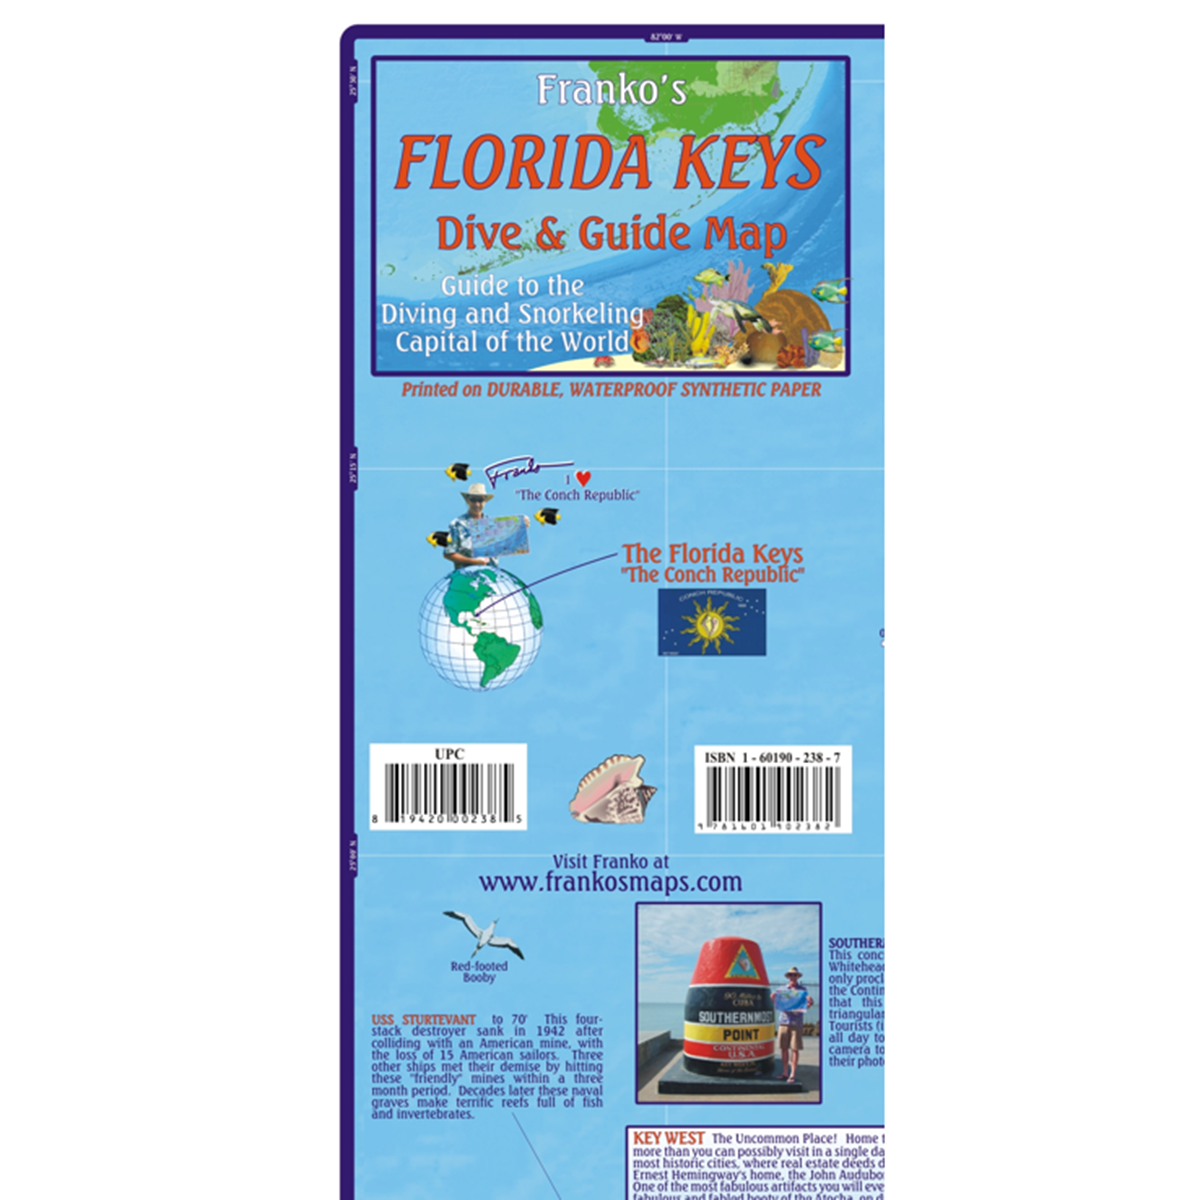 Florida Keys Maps.Franko Maps Florida Keys Dive Creature Adventure Guide 18 X 26 Inch